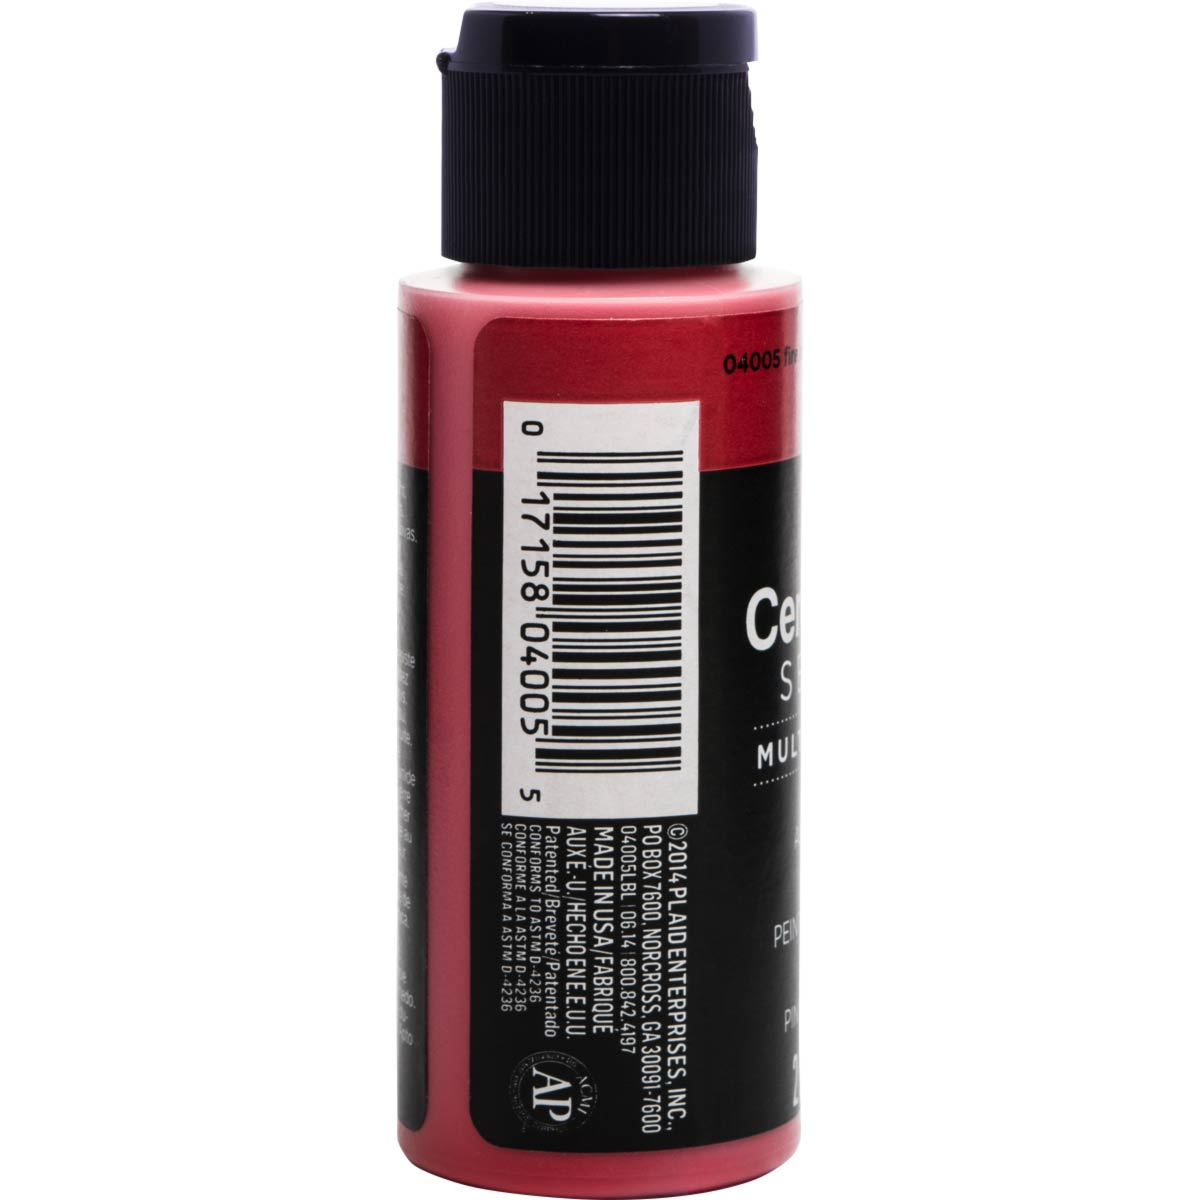 Delta Ceramcoat ® Select Multi-Surface Acrylic Paint - Satin - Fire Red, 2 oz. - 04005